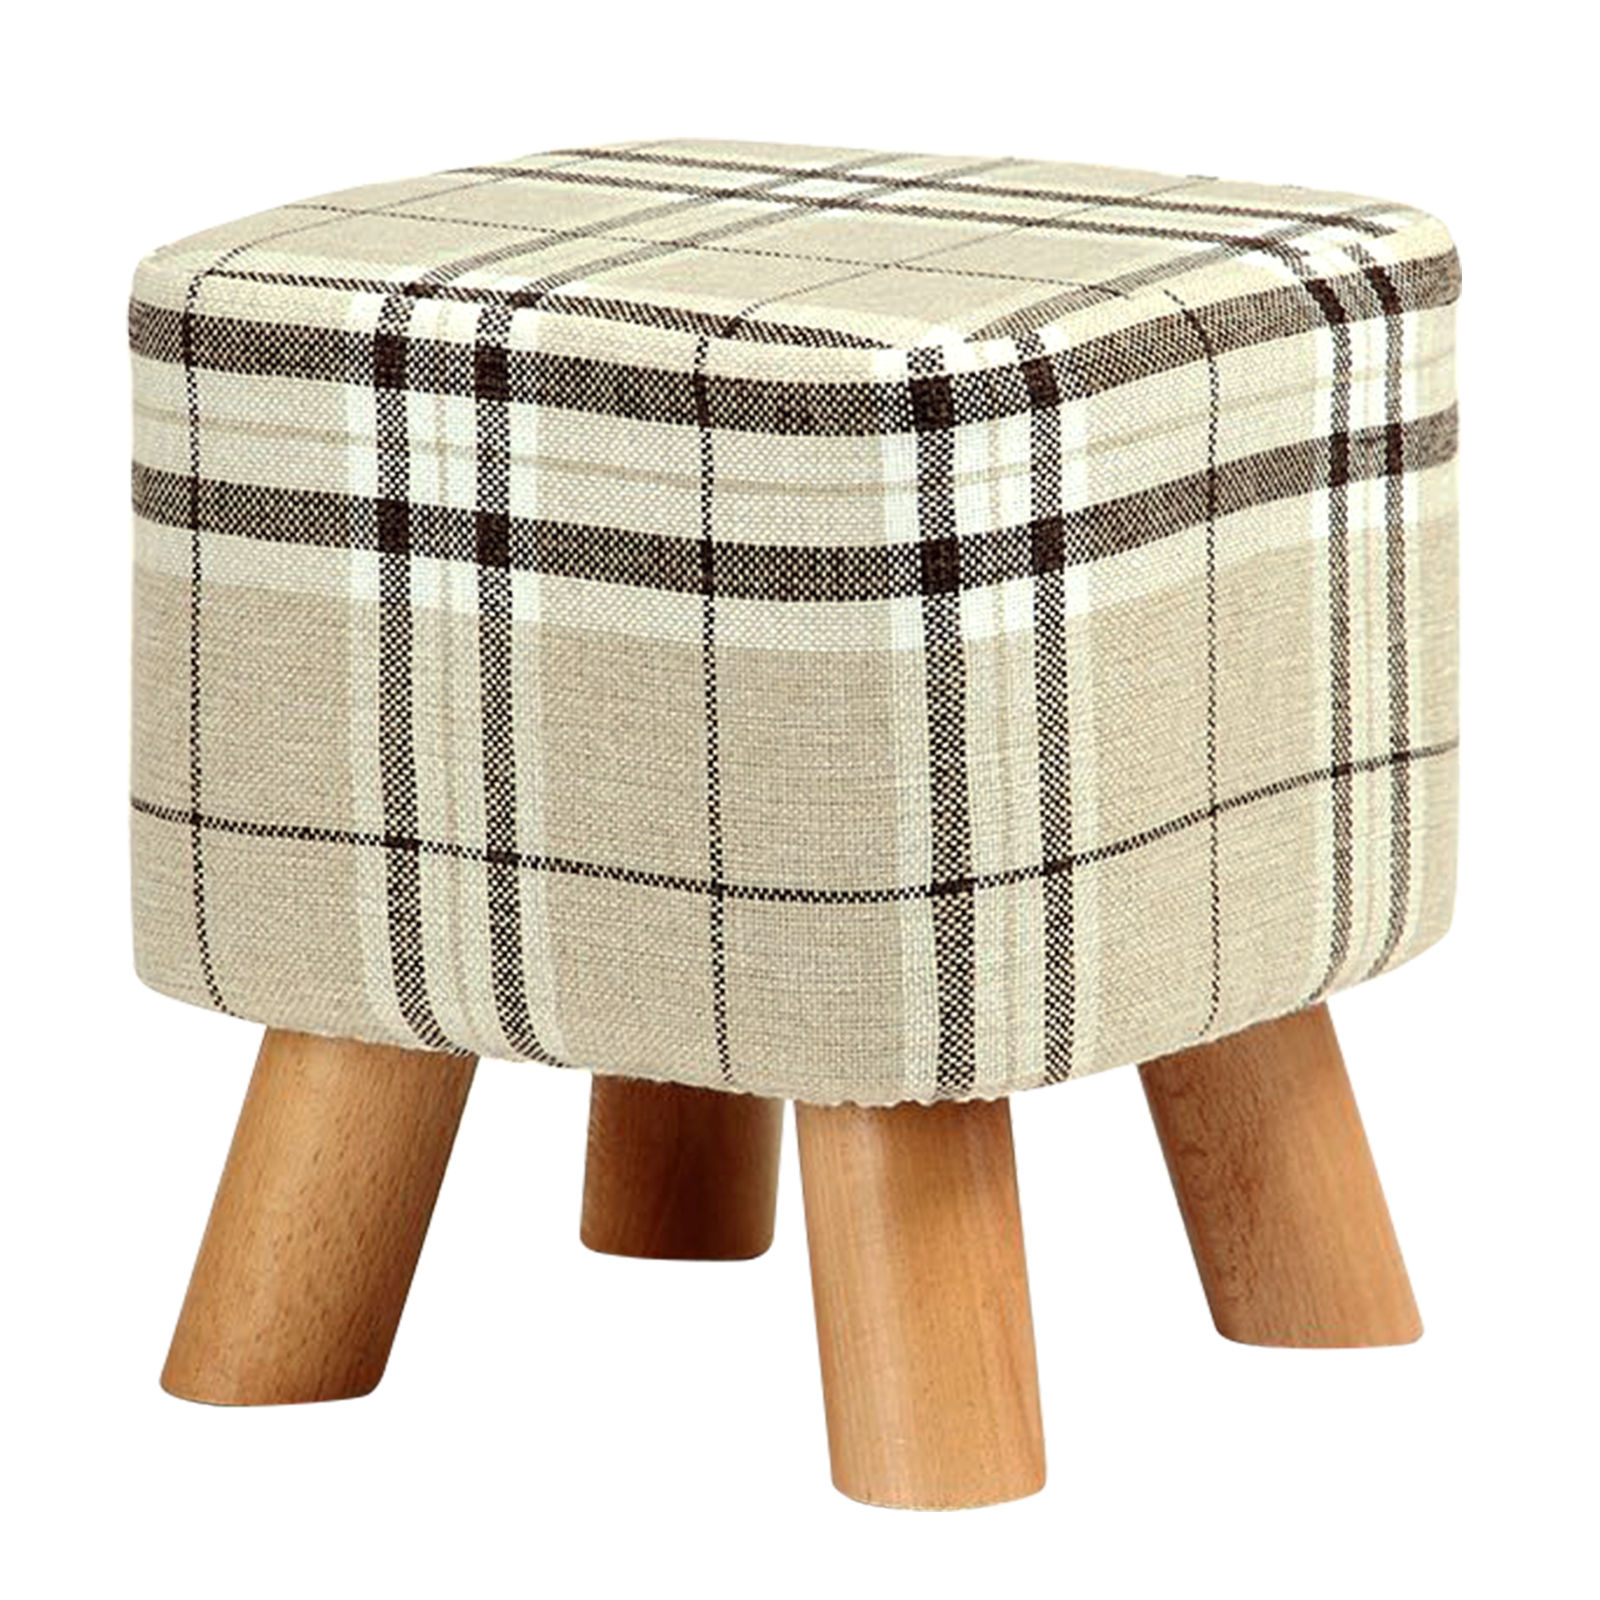 Best Modern Luxury Upholstered Footstool Pouffe Stool + Wooden Leg Pattern:Square Fabric:Big Checkered(4 Legs) free shipping u best wooden bar stool contemporary swivel stools oak wood stool with square post legs natural finish barstool